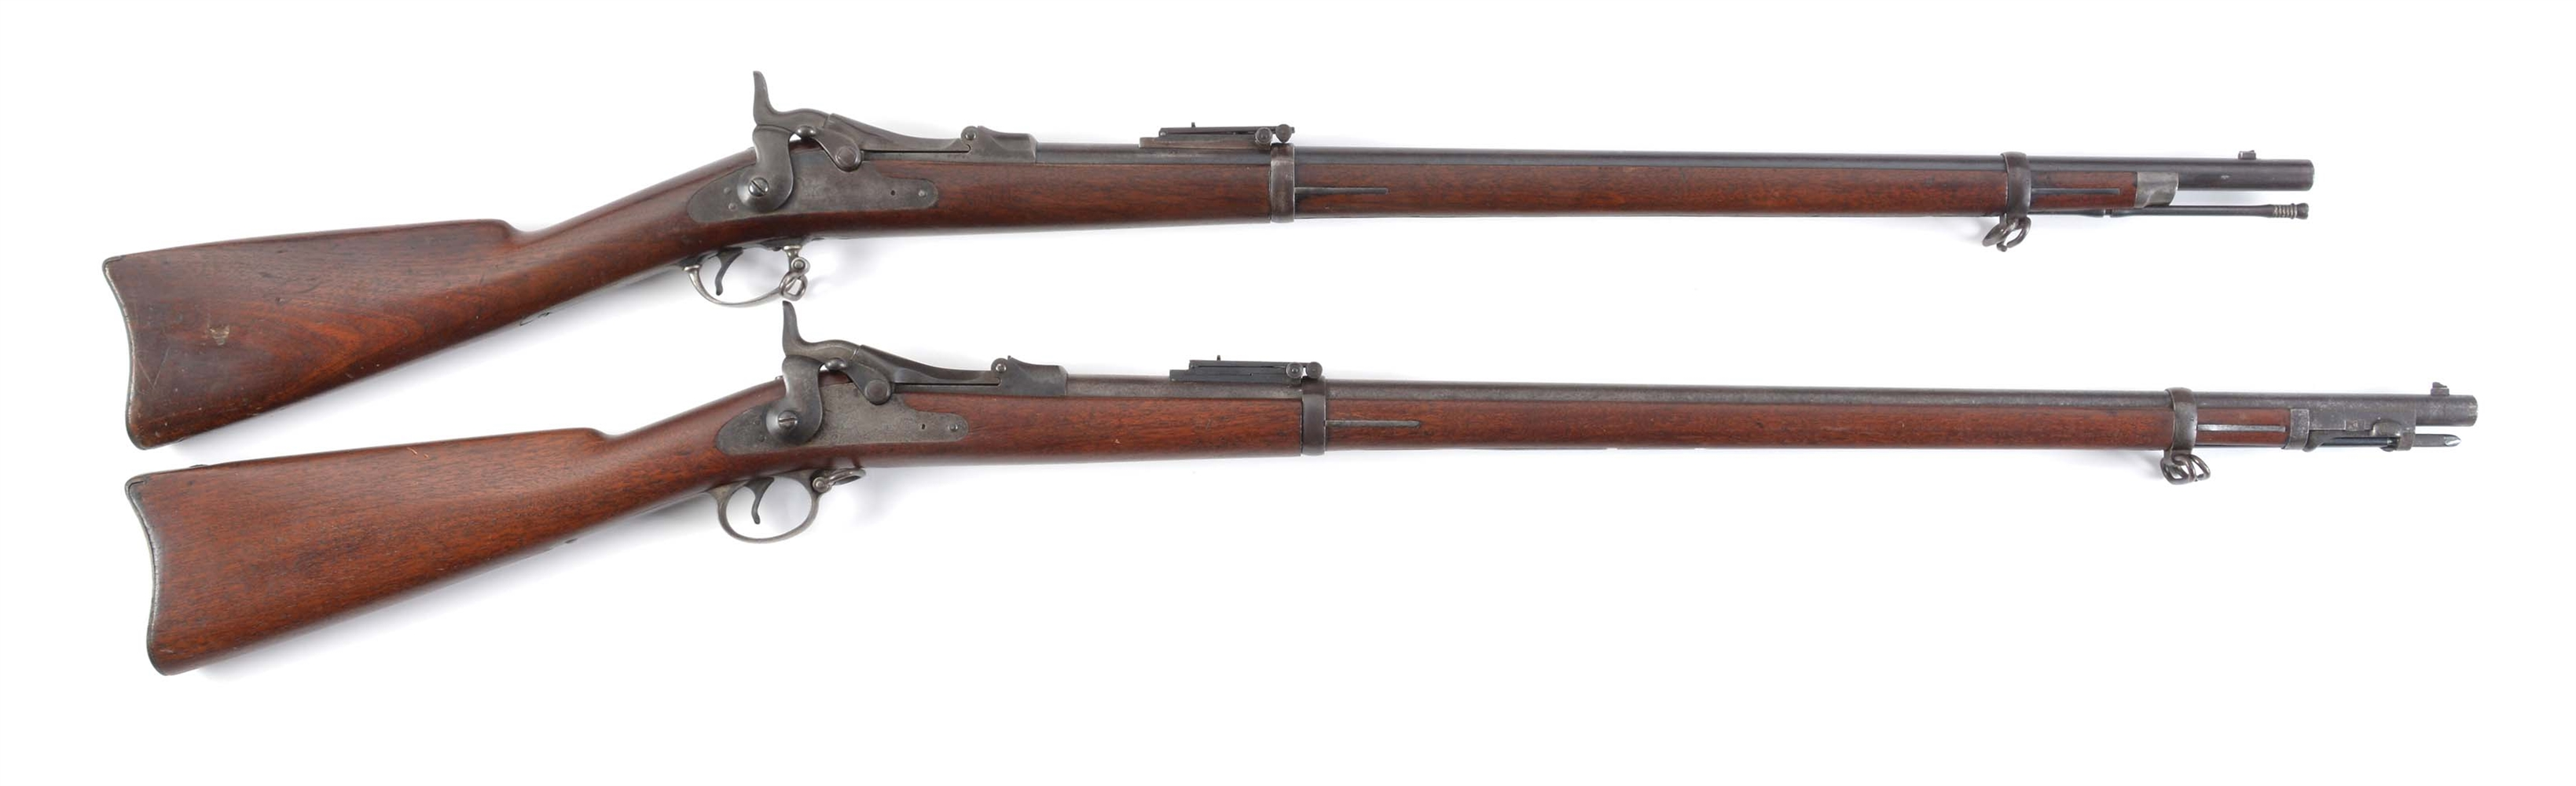 (A) LOT OF TWO: SPRINGFIELD 1884 CADET TRAPDOOR AND 1888 TRAPDOOR RIFLES.